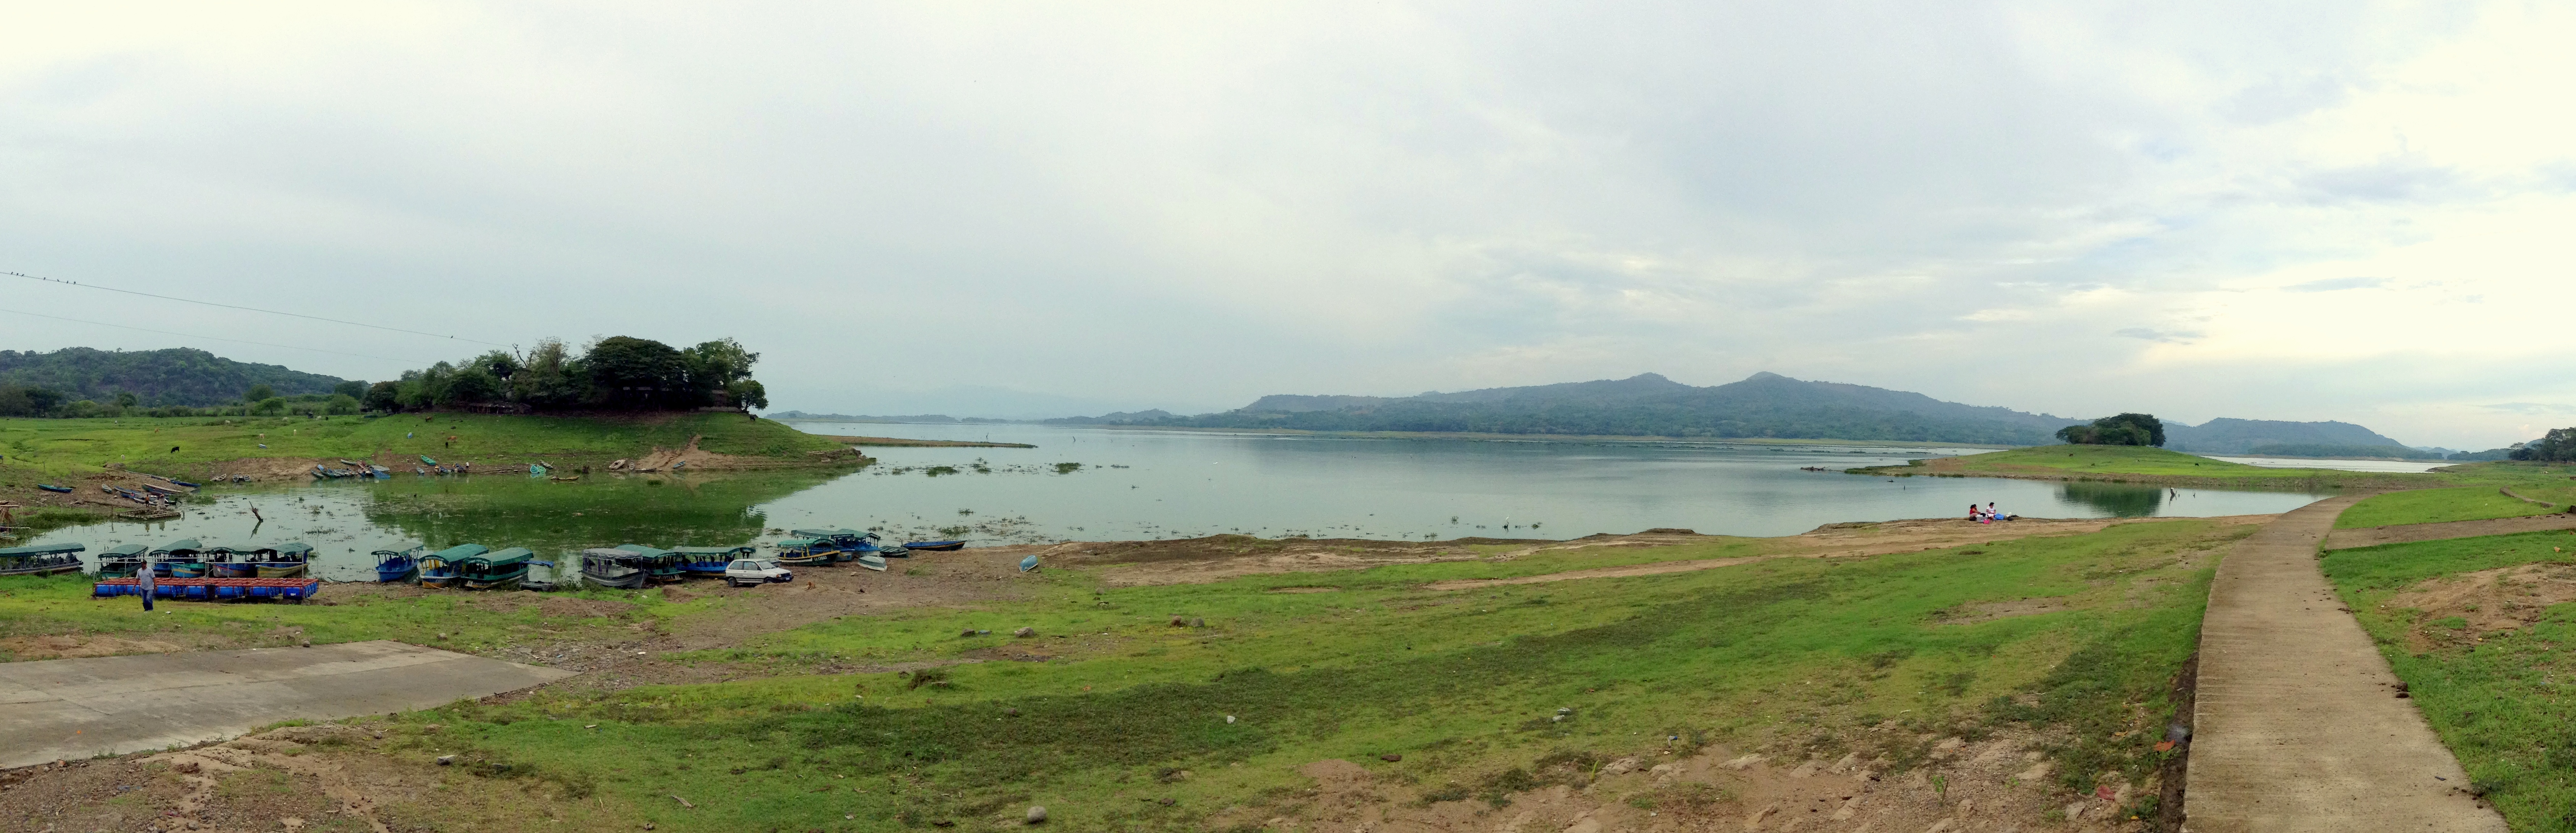 An iPod panorama of Lago Suchitlan, Suchitoto, El Salvador. June 4th 2013 (iPod) *Click on the image to view full screen.*